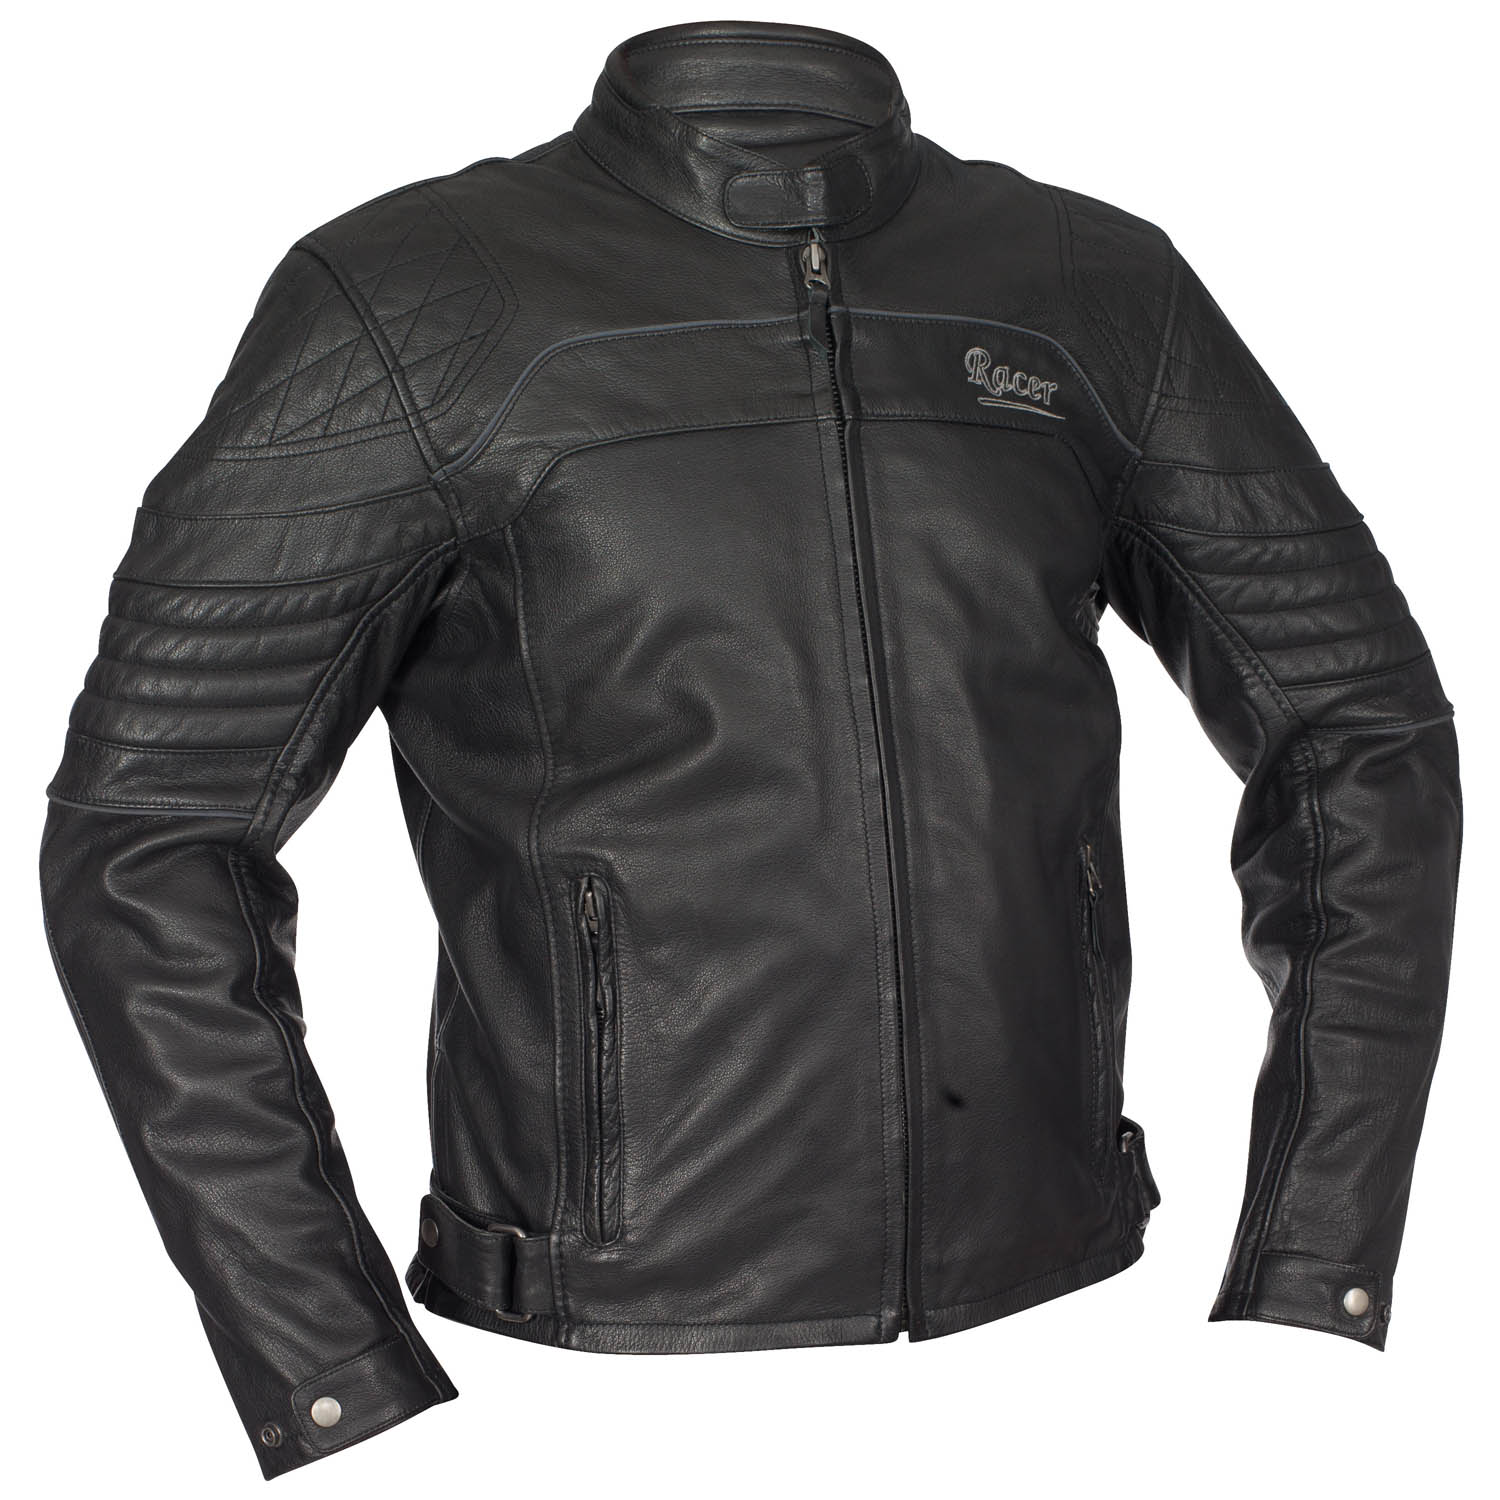 racer indy herren vintage motorradjacke leder schwarz. Black Bedroom Furniture Sets. Home Design Ideas